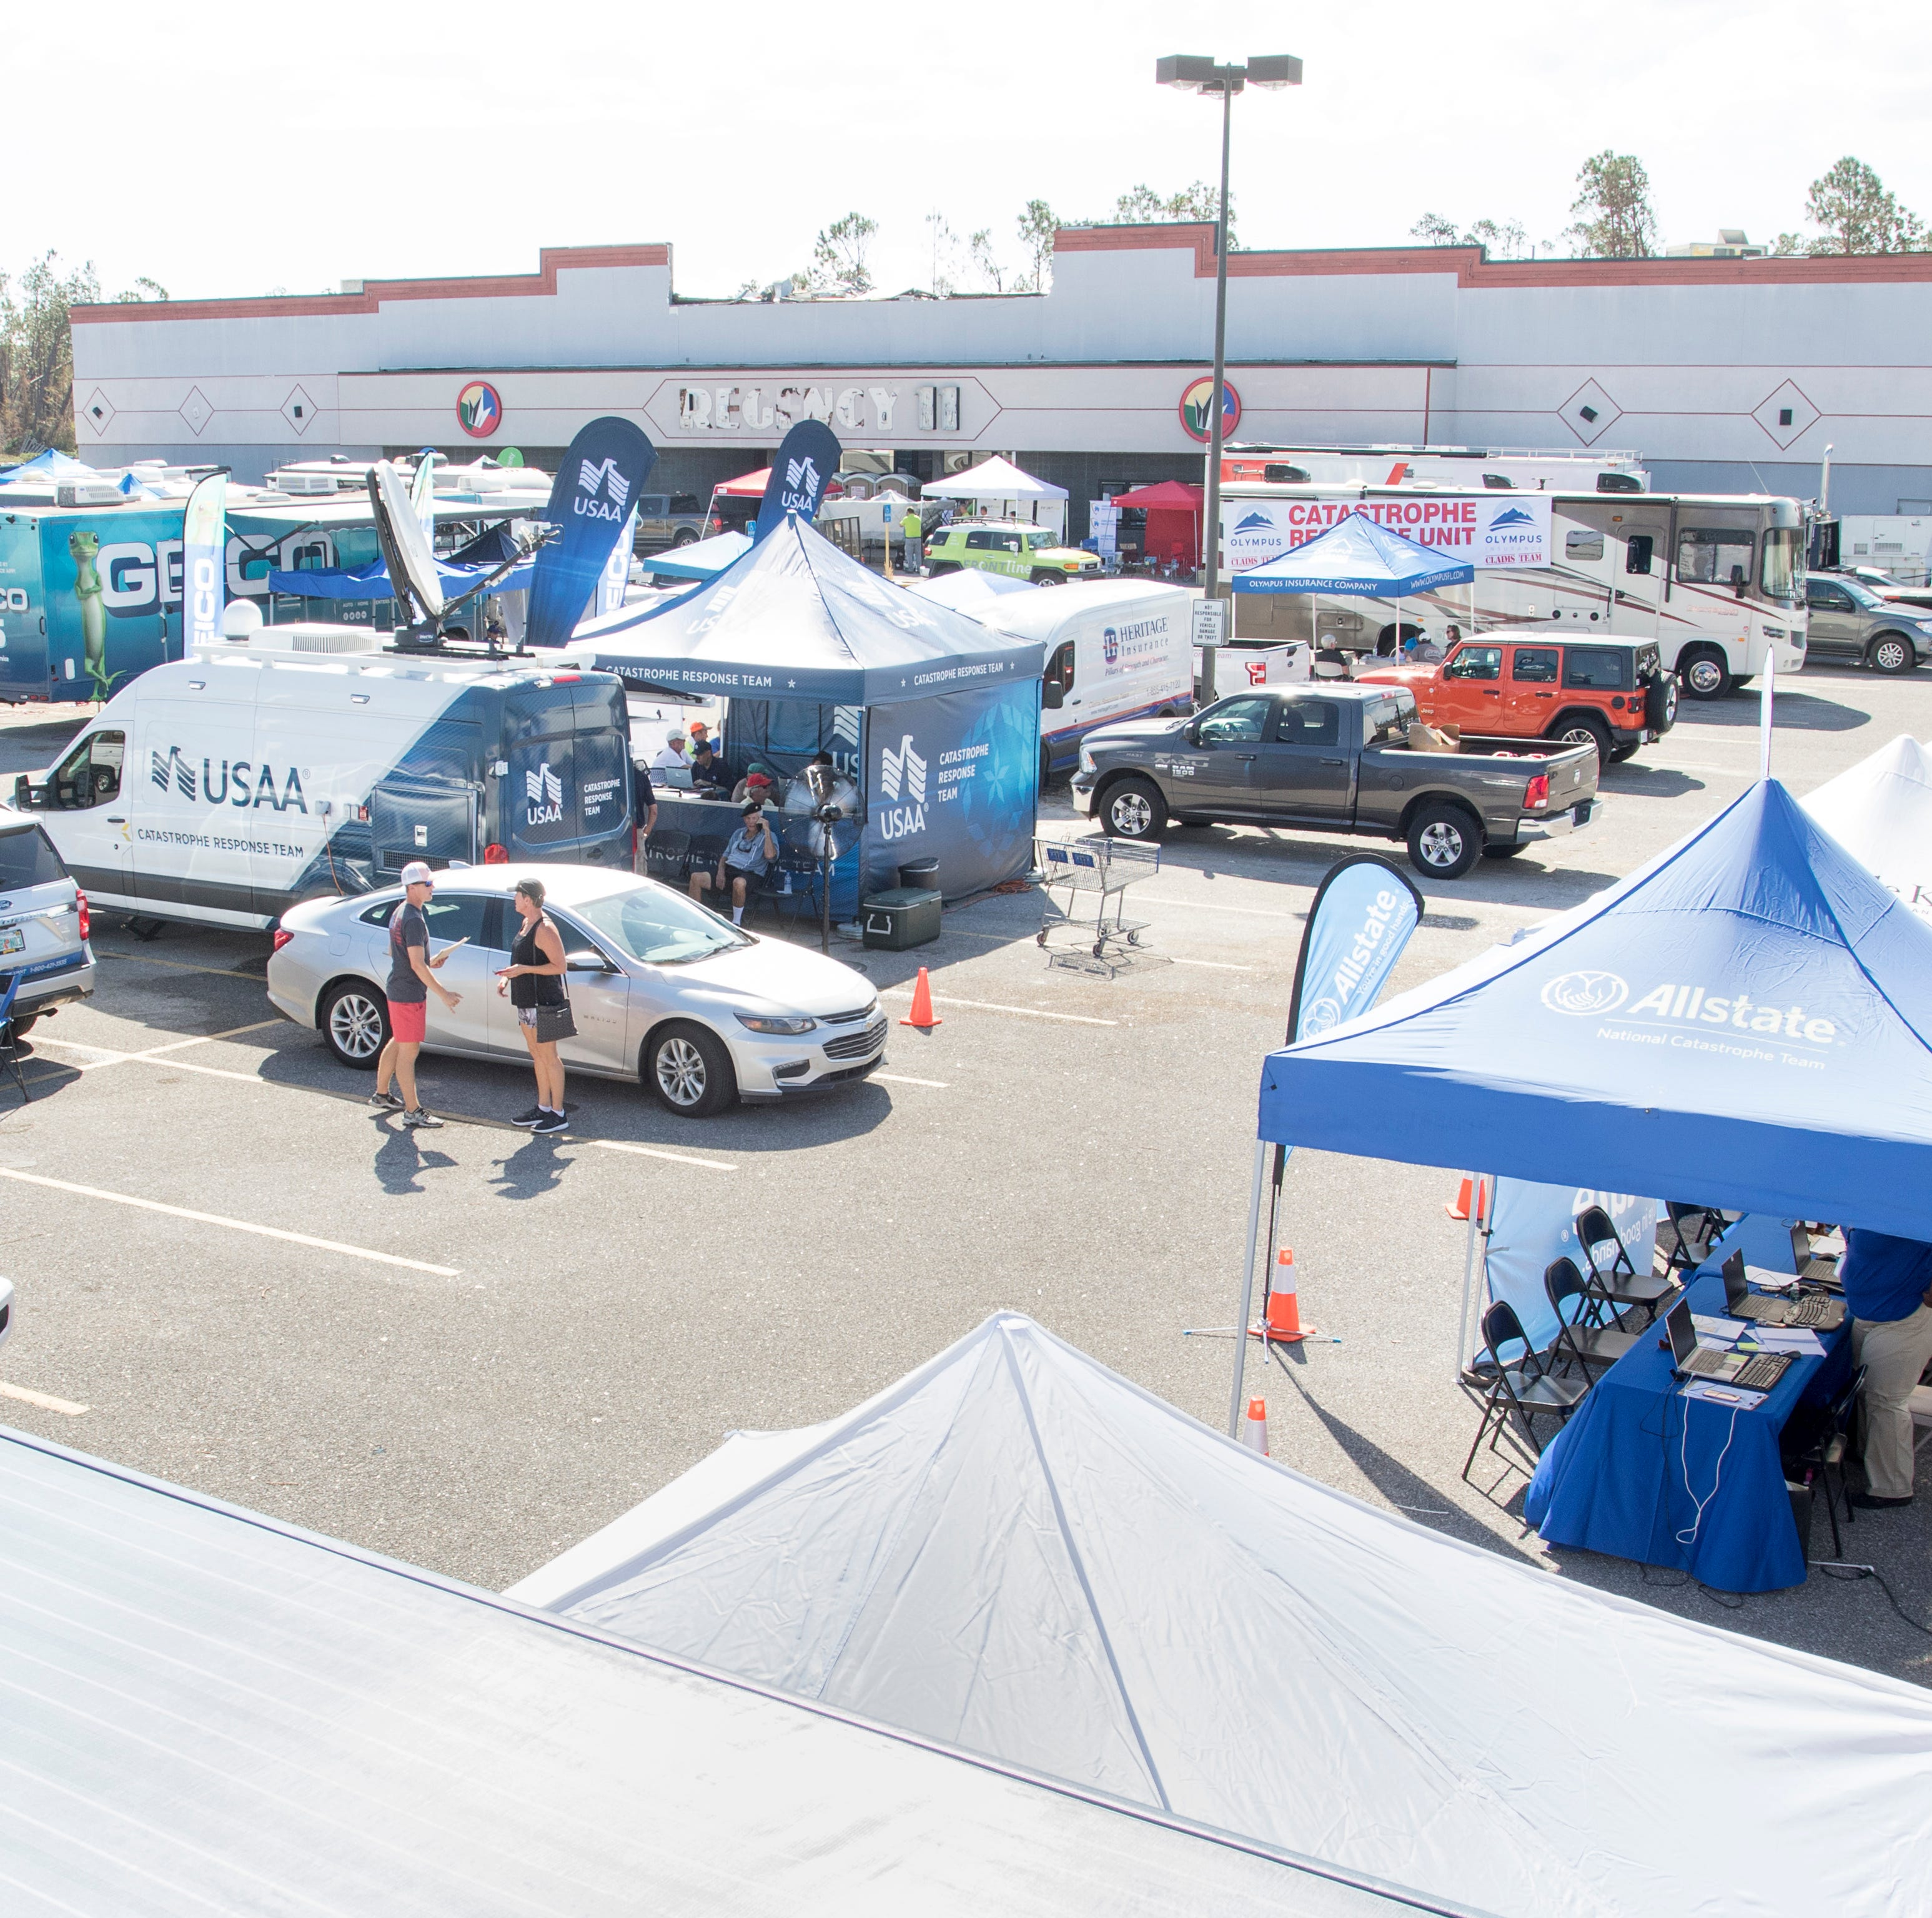 An insurance village as been set up on West 23rd Street to service clients affected by Hurricane Michael in Panama City, Florida on Wednesday, October 17, 2018.